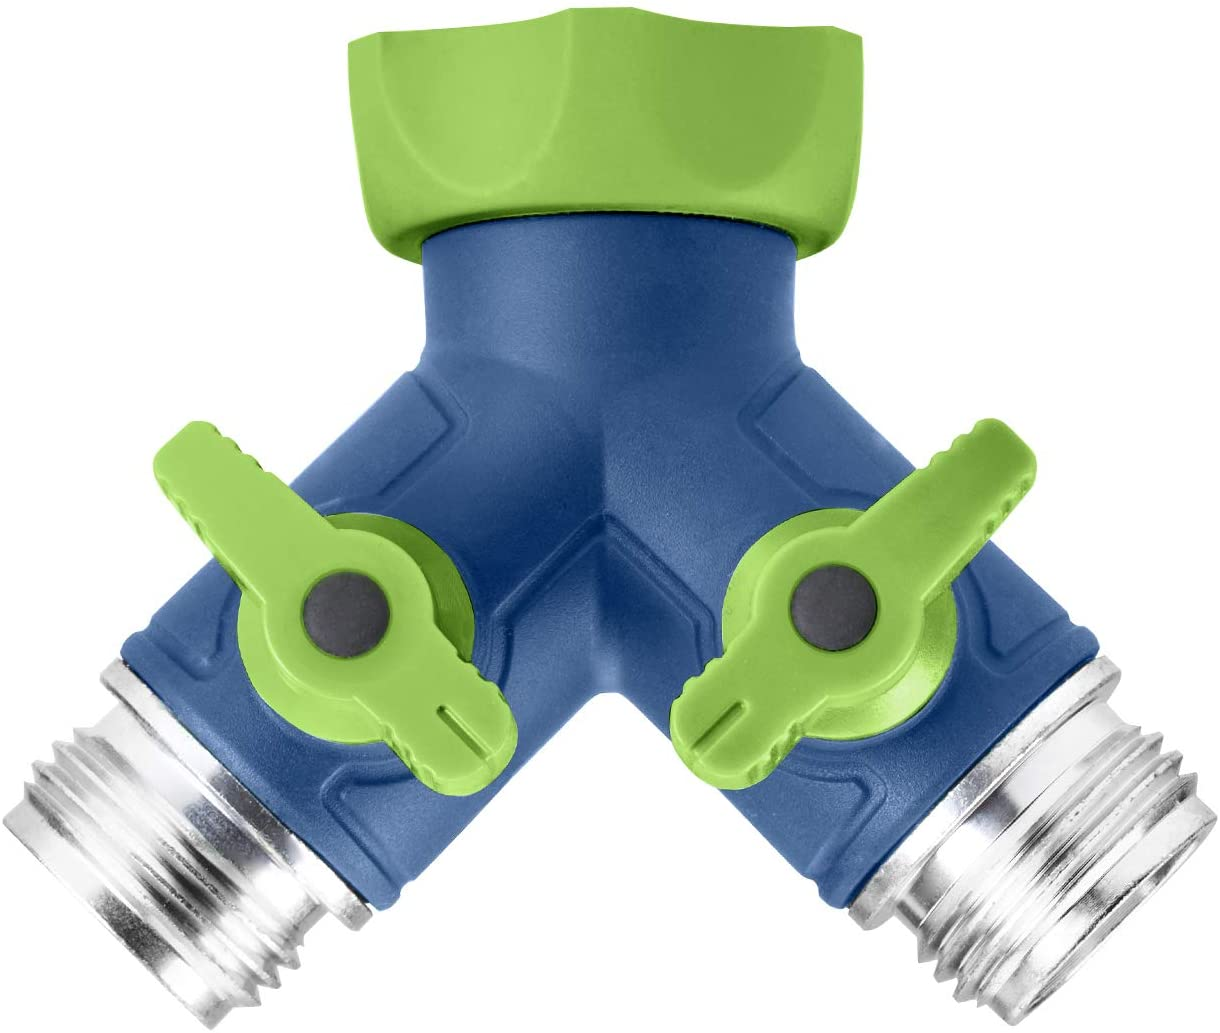 GREEN MOUNT Garden Hose Connector Tap Splitter, Y Hose Connector, Easy Grip Splitter with Shut-Off Valves (Two Way)